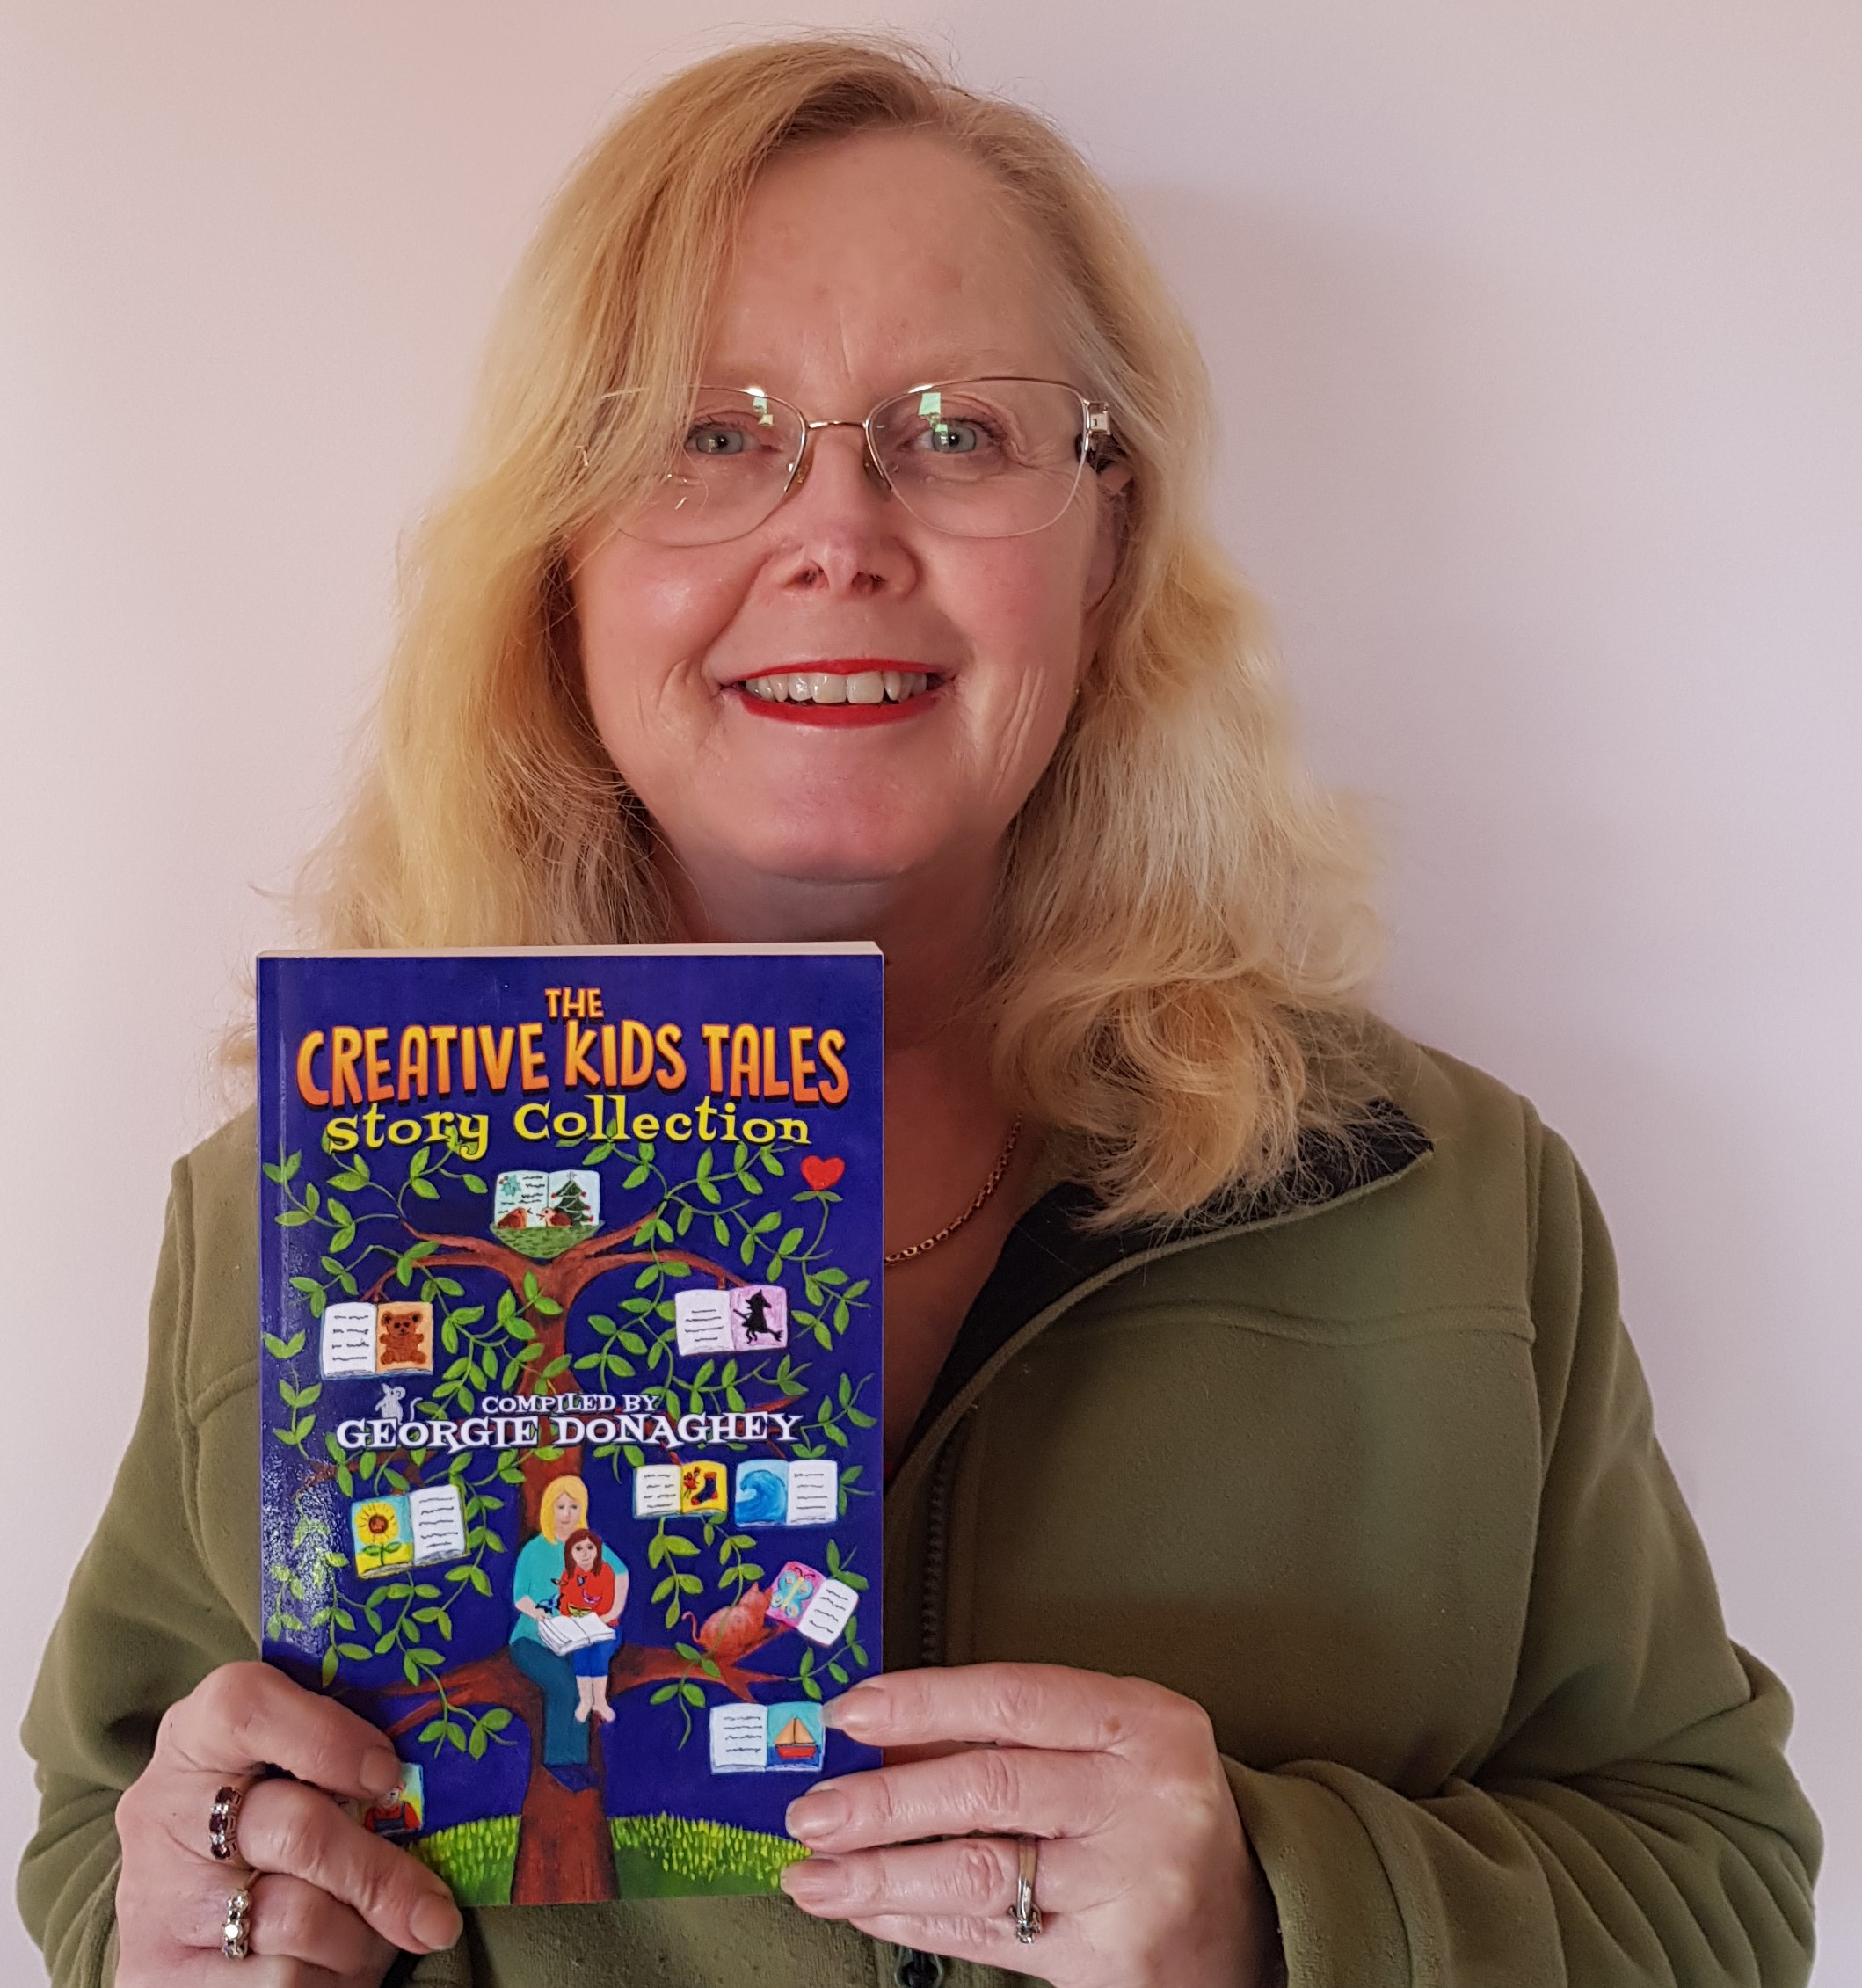 The Creative Kids Tales Story Collection